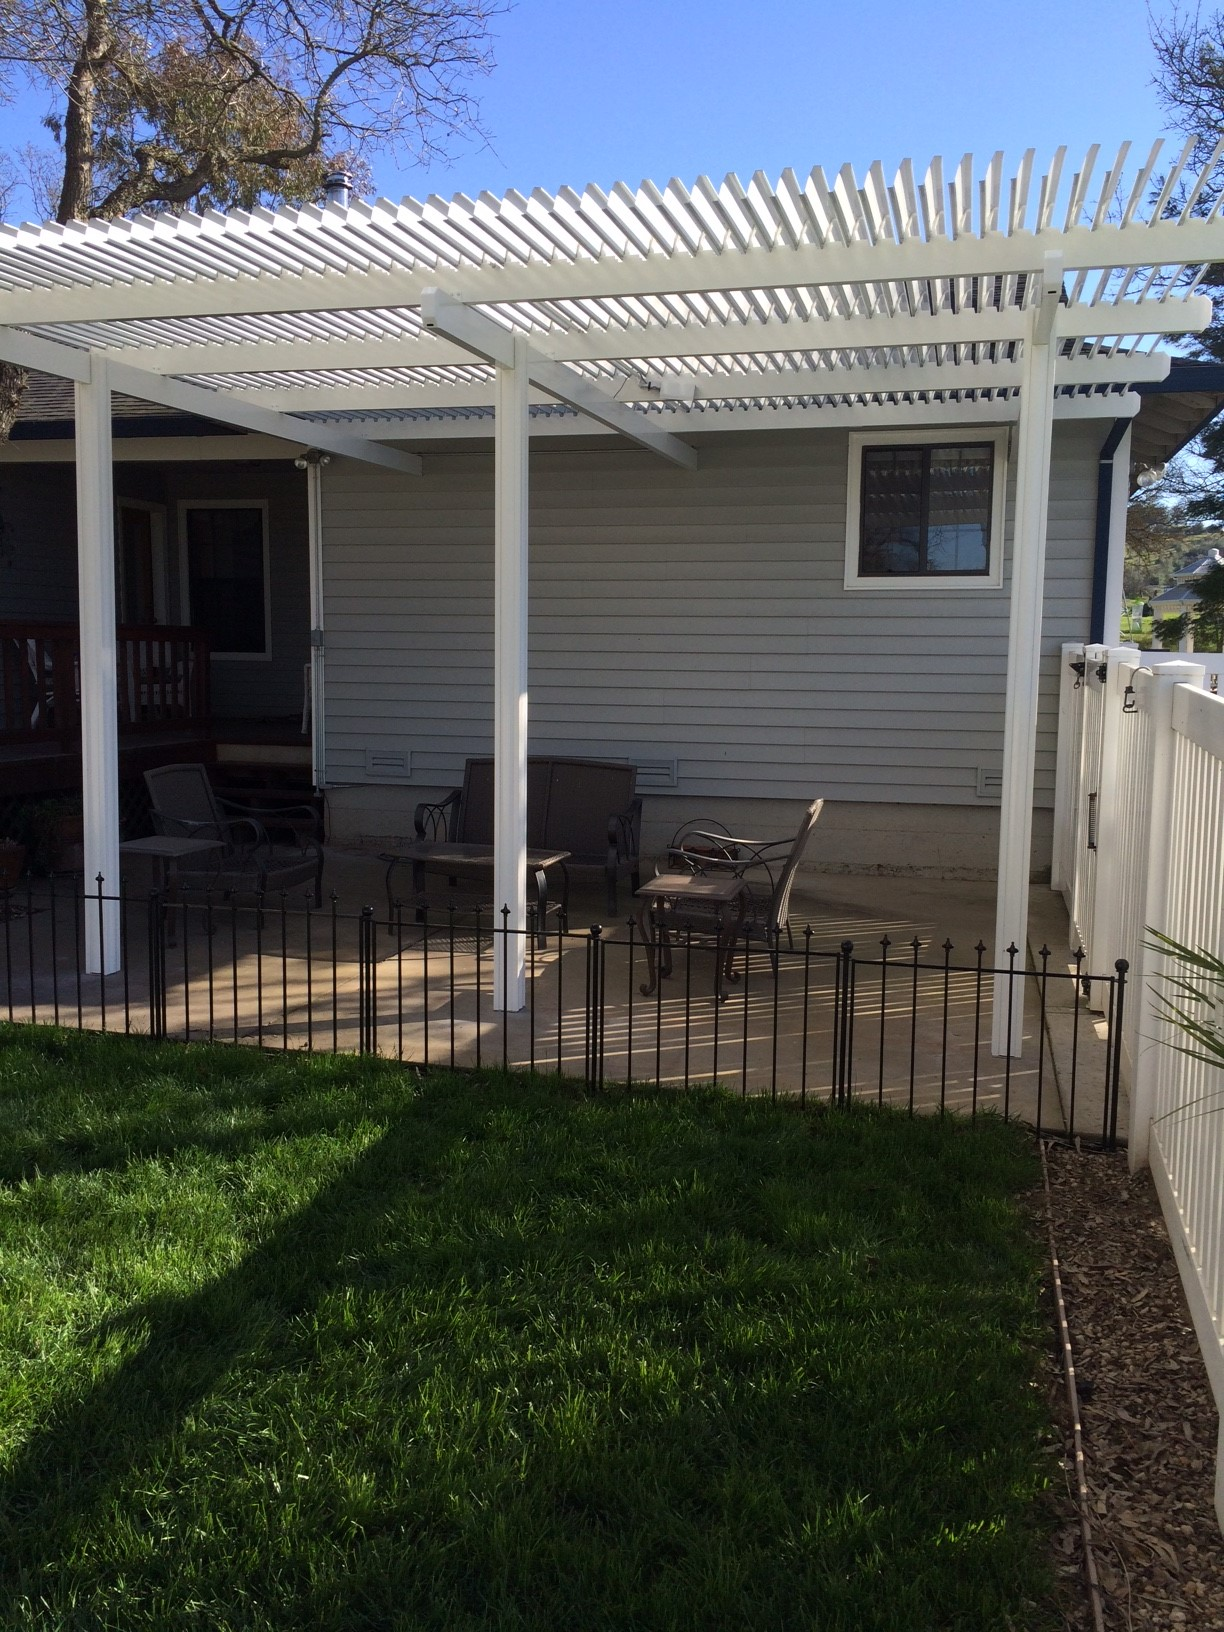 3. Solara patio cover-Valley Springs